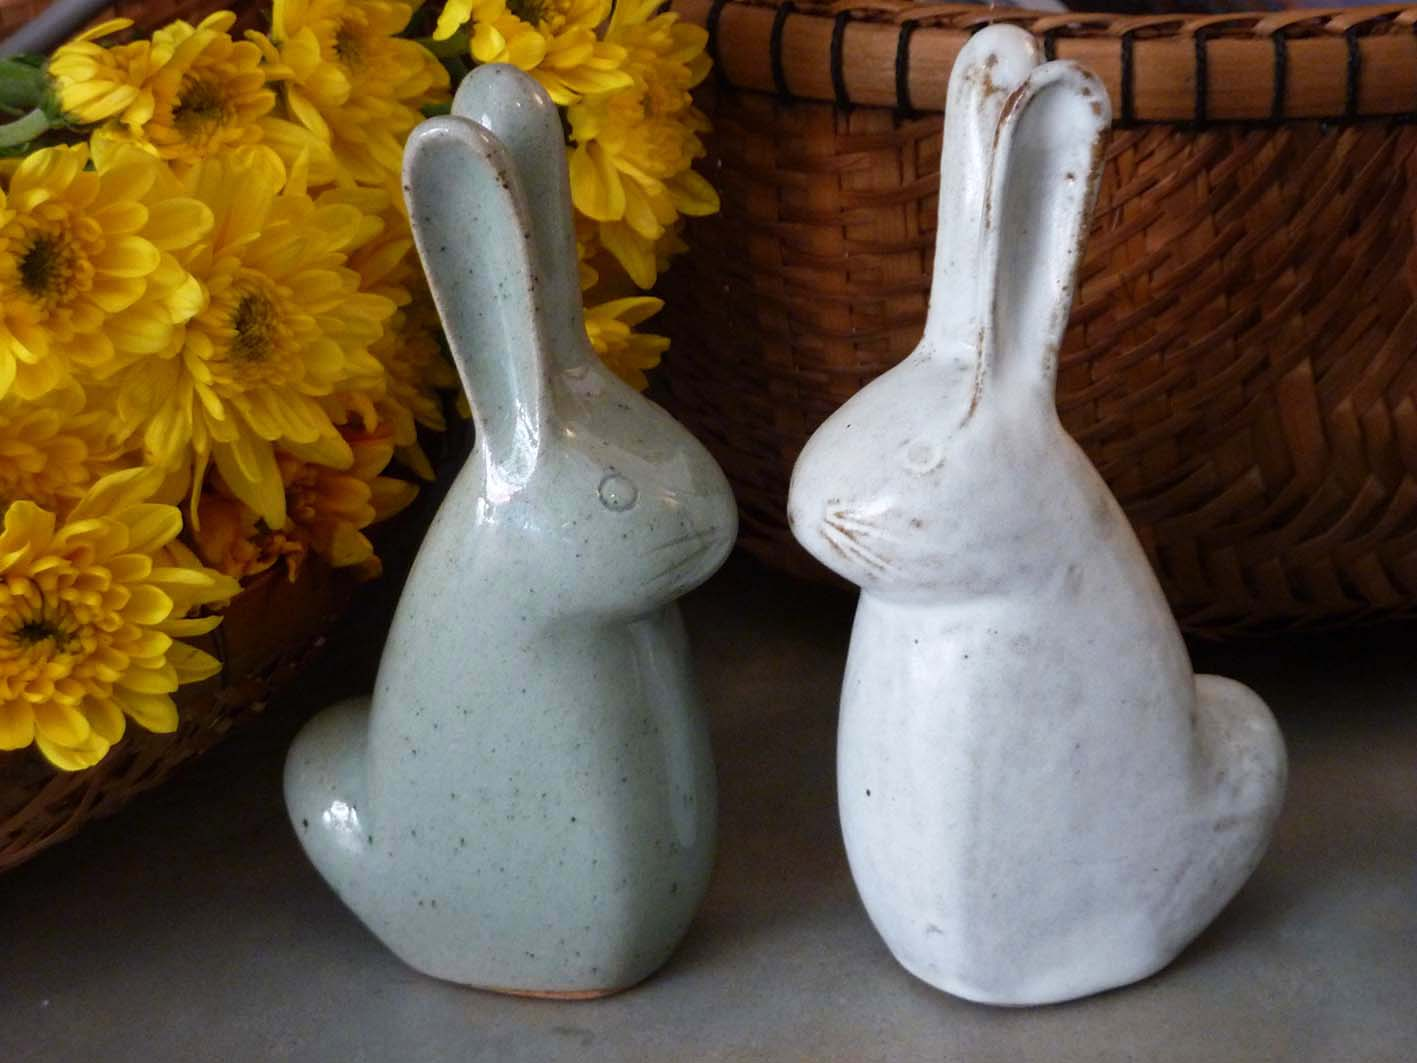 Ceramic bunnies. H16cm x W9cm. Available in Snow White and Celadon Grey. $12.00 each.